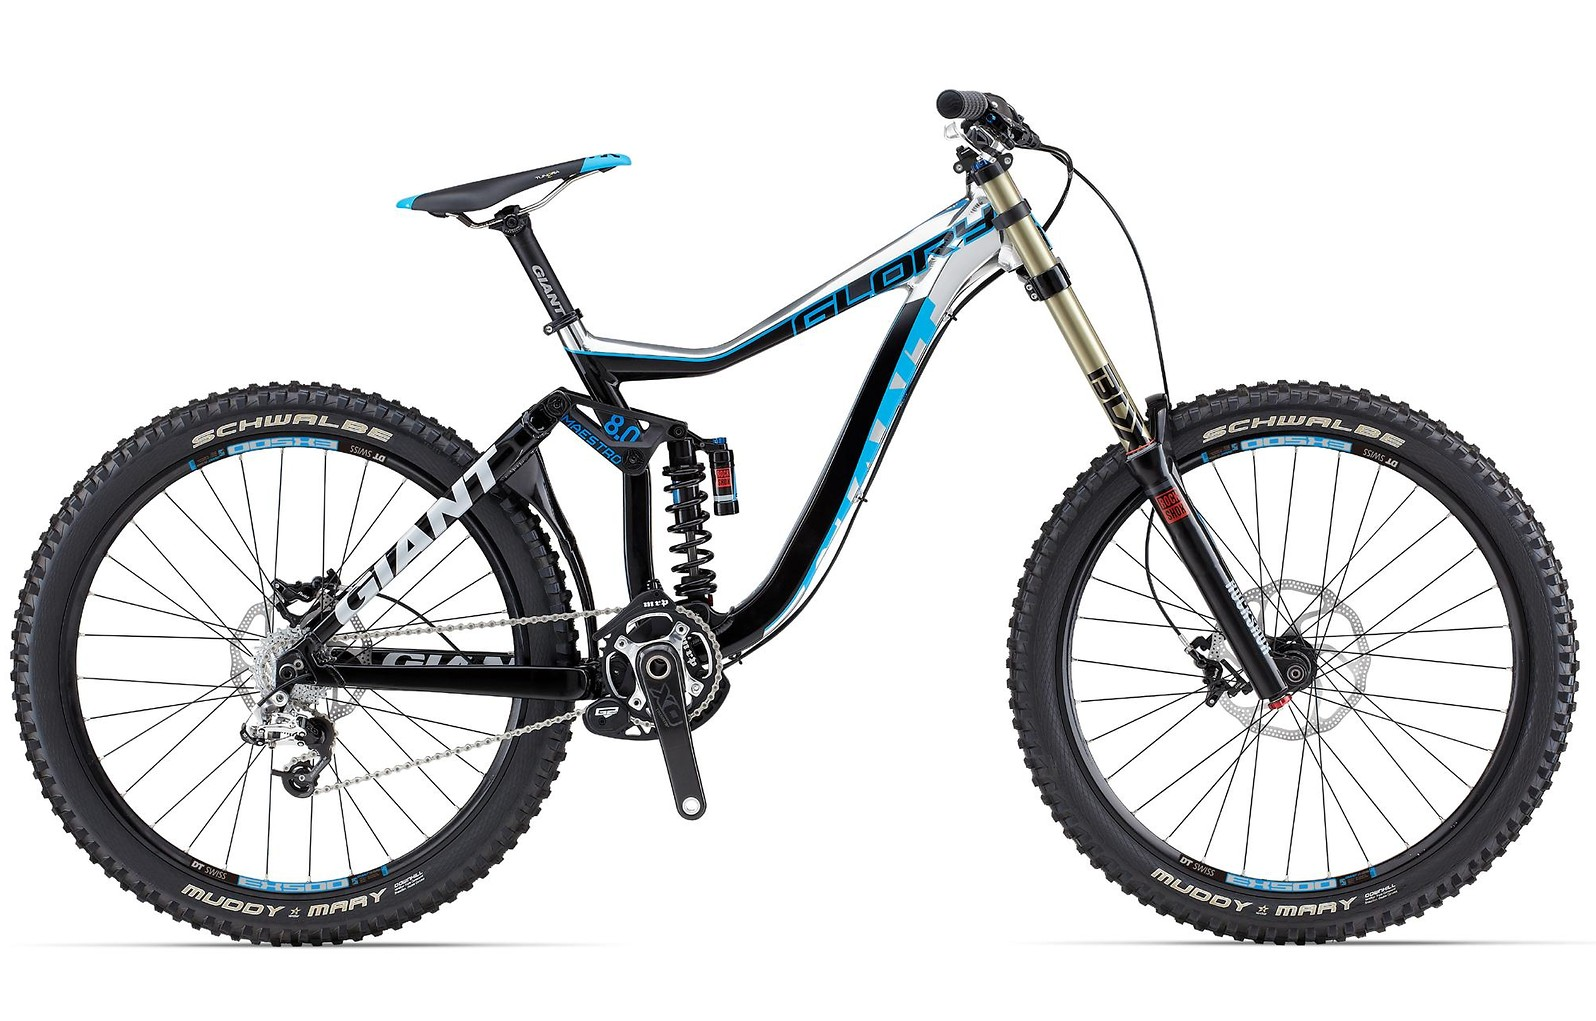 2013 Giant Glory 0 - Reviews, Comparisons, Specs - Mountain Bikes - Vital MTB